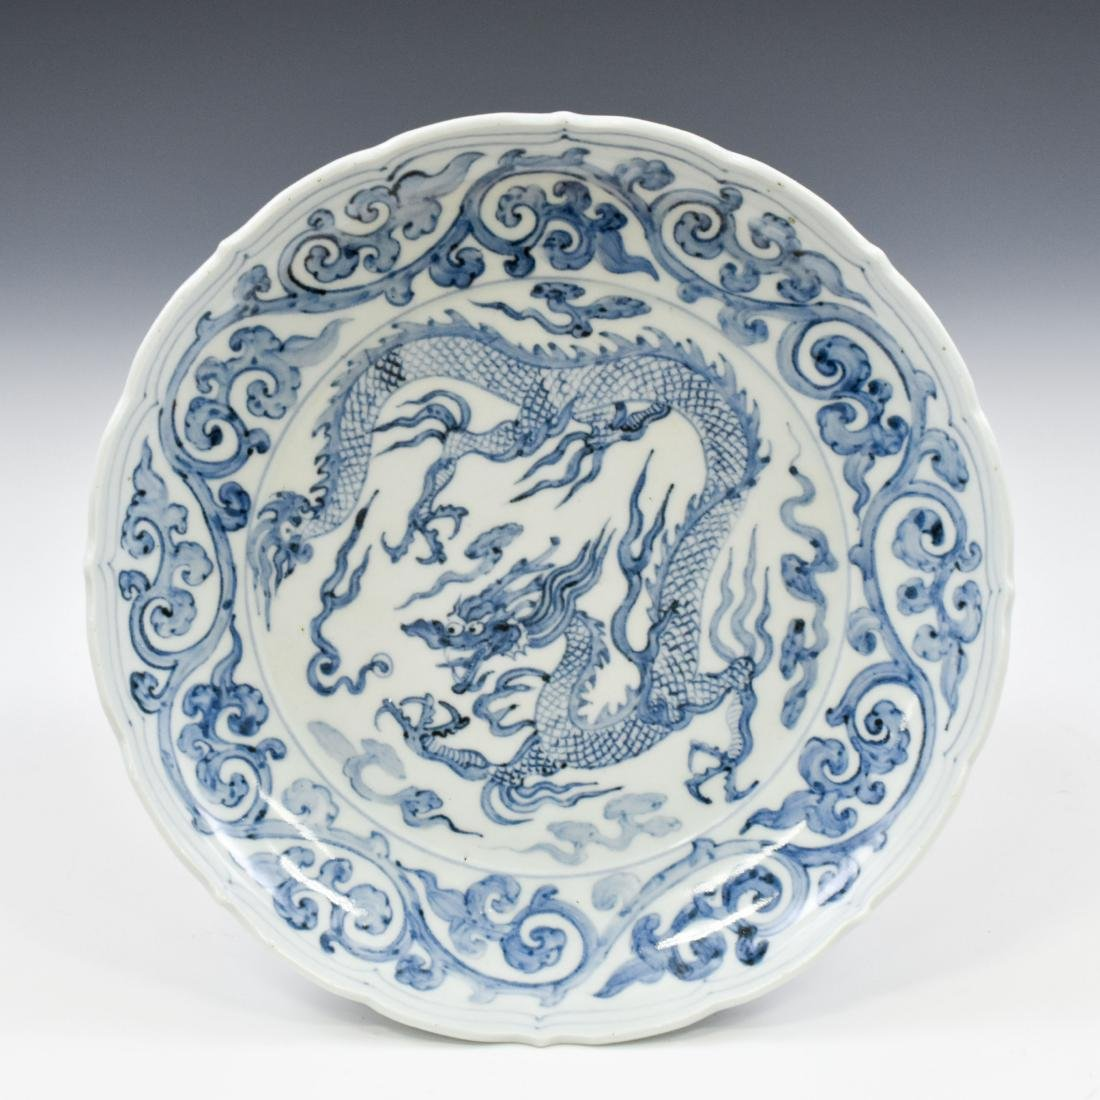 YUAN SCALLOPED RIM BLUE & WHITE DRAGON CHARGER